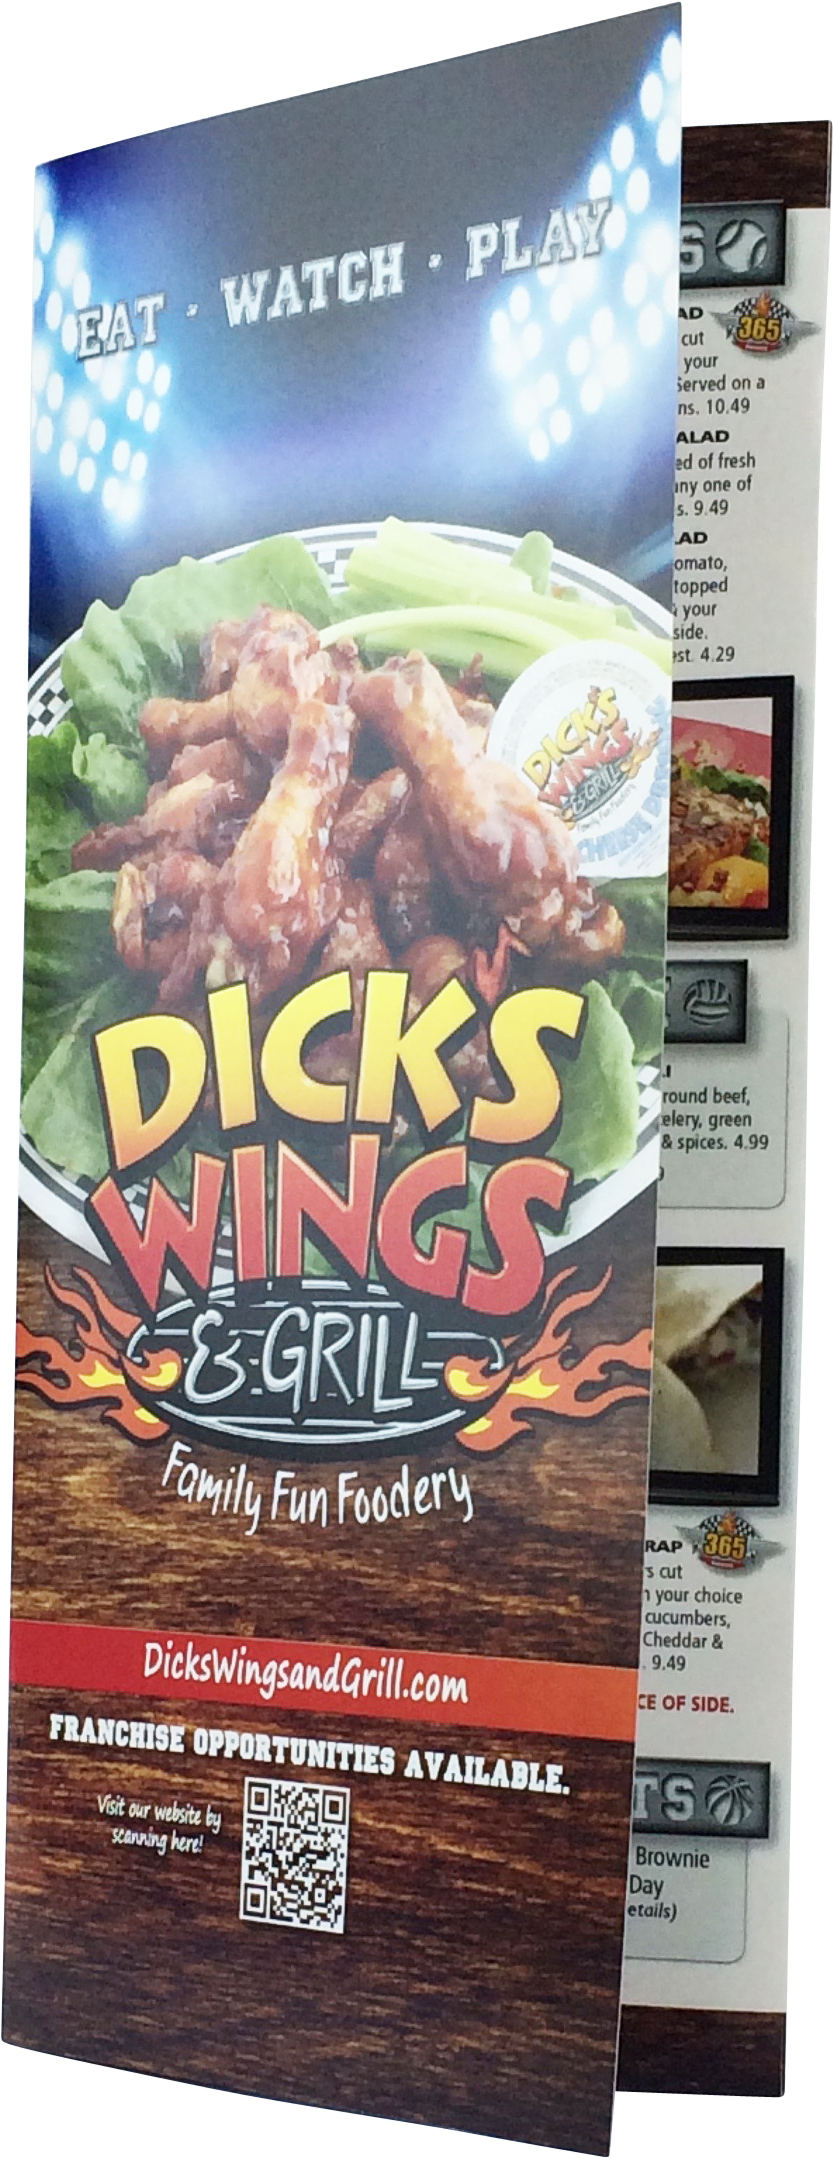 Dicks Wing Superflex